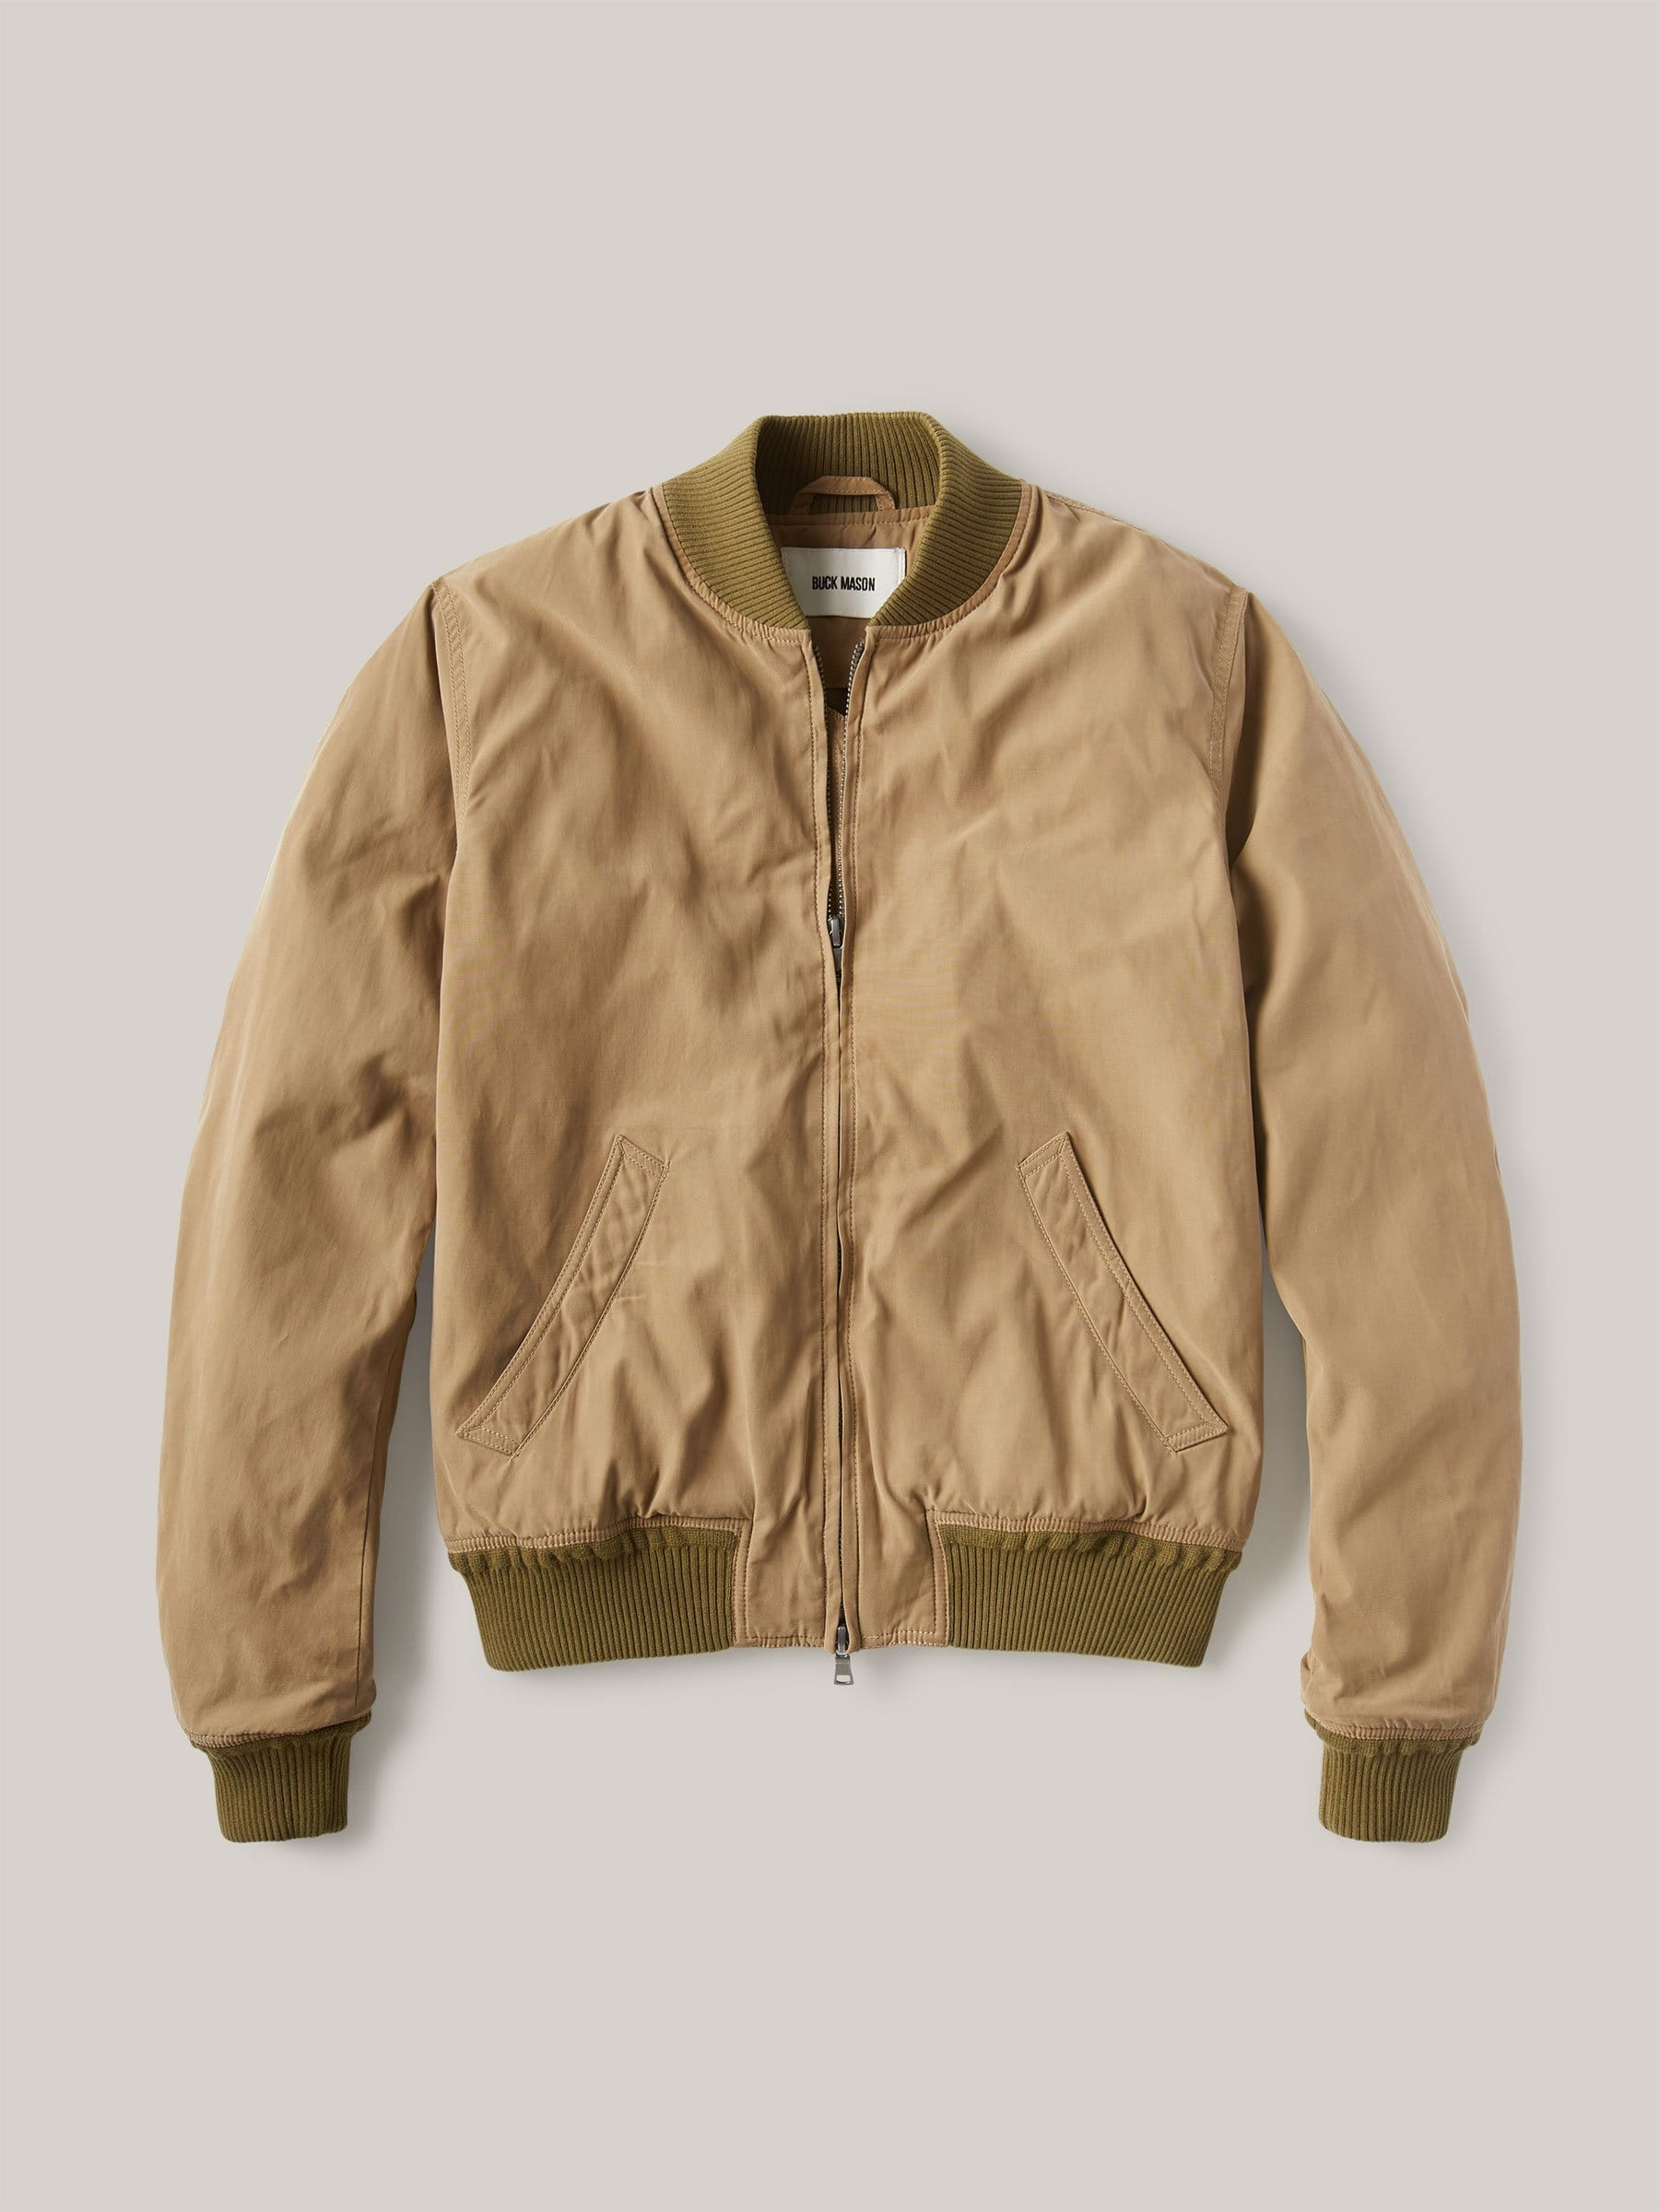 Buck Mason - Elm Oil Cloth Bomber